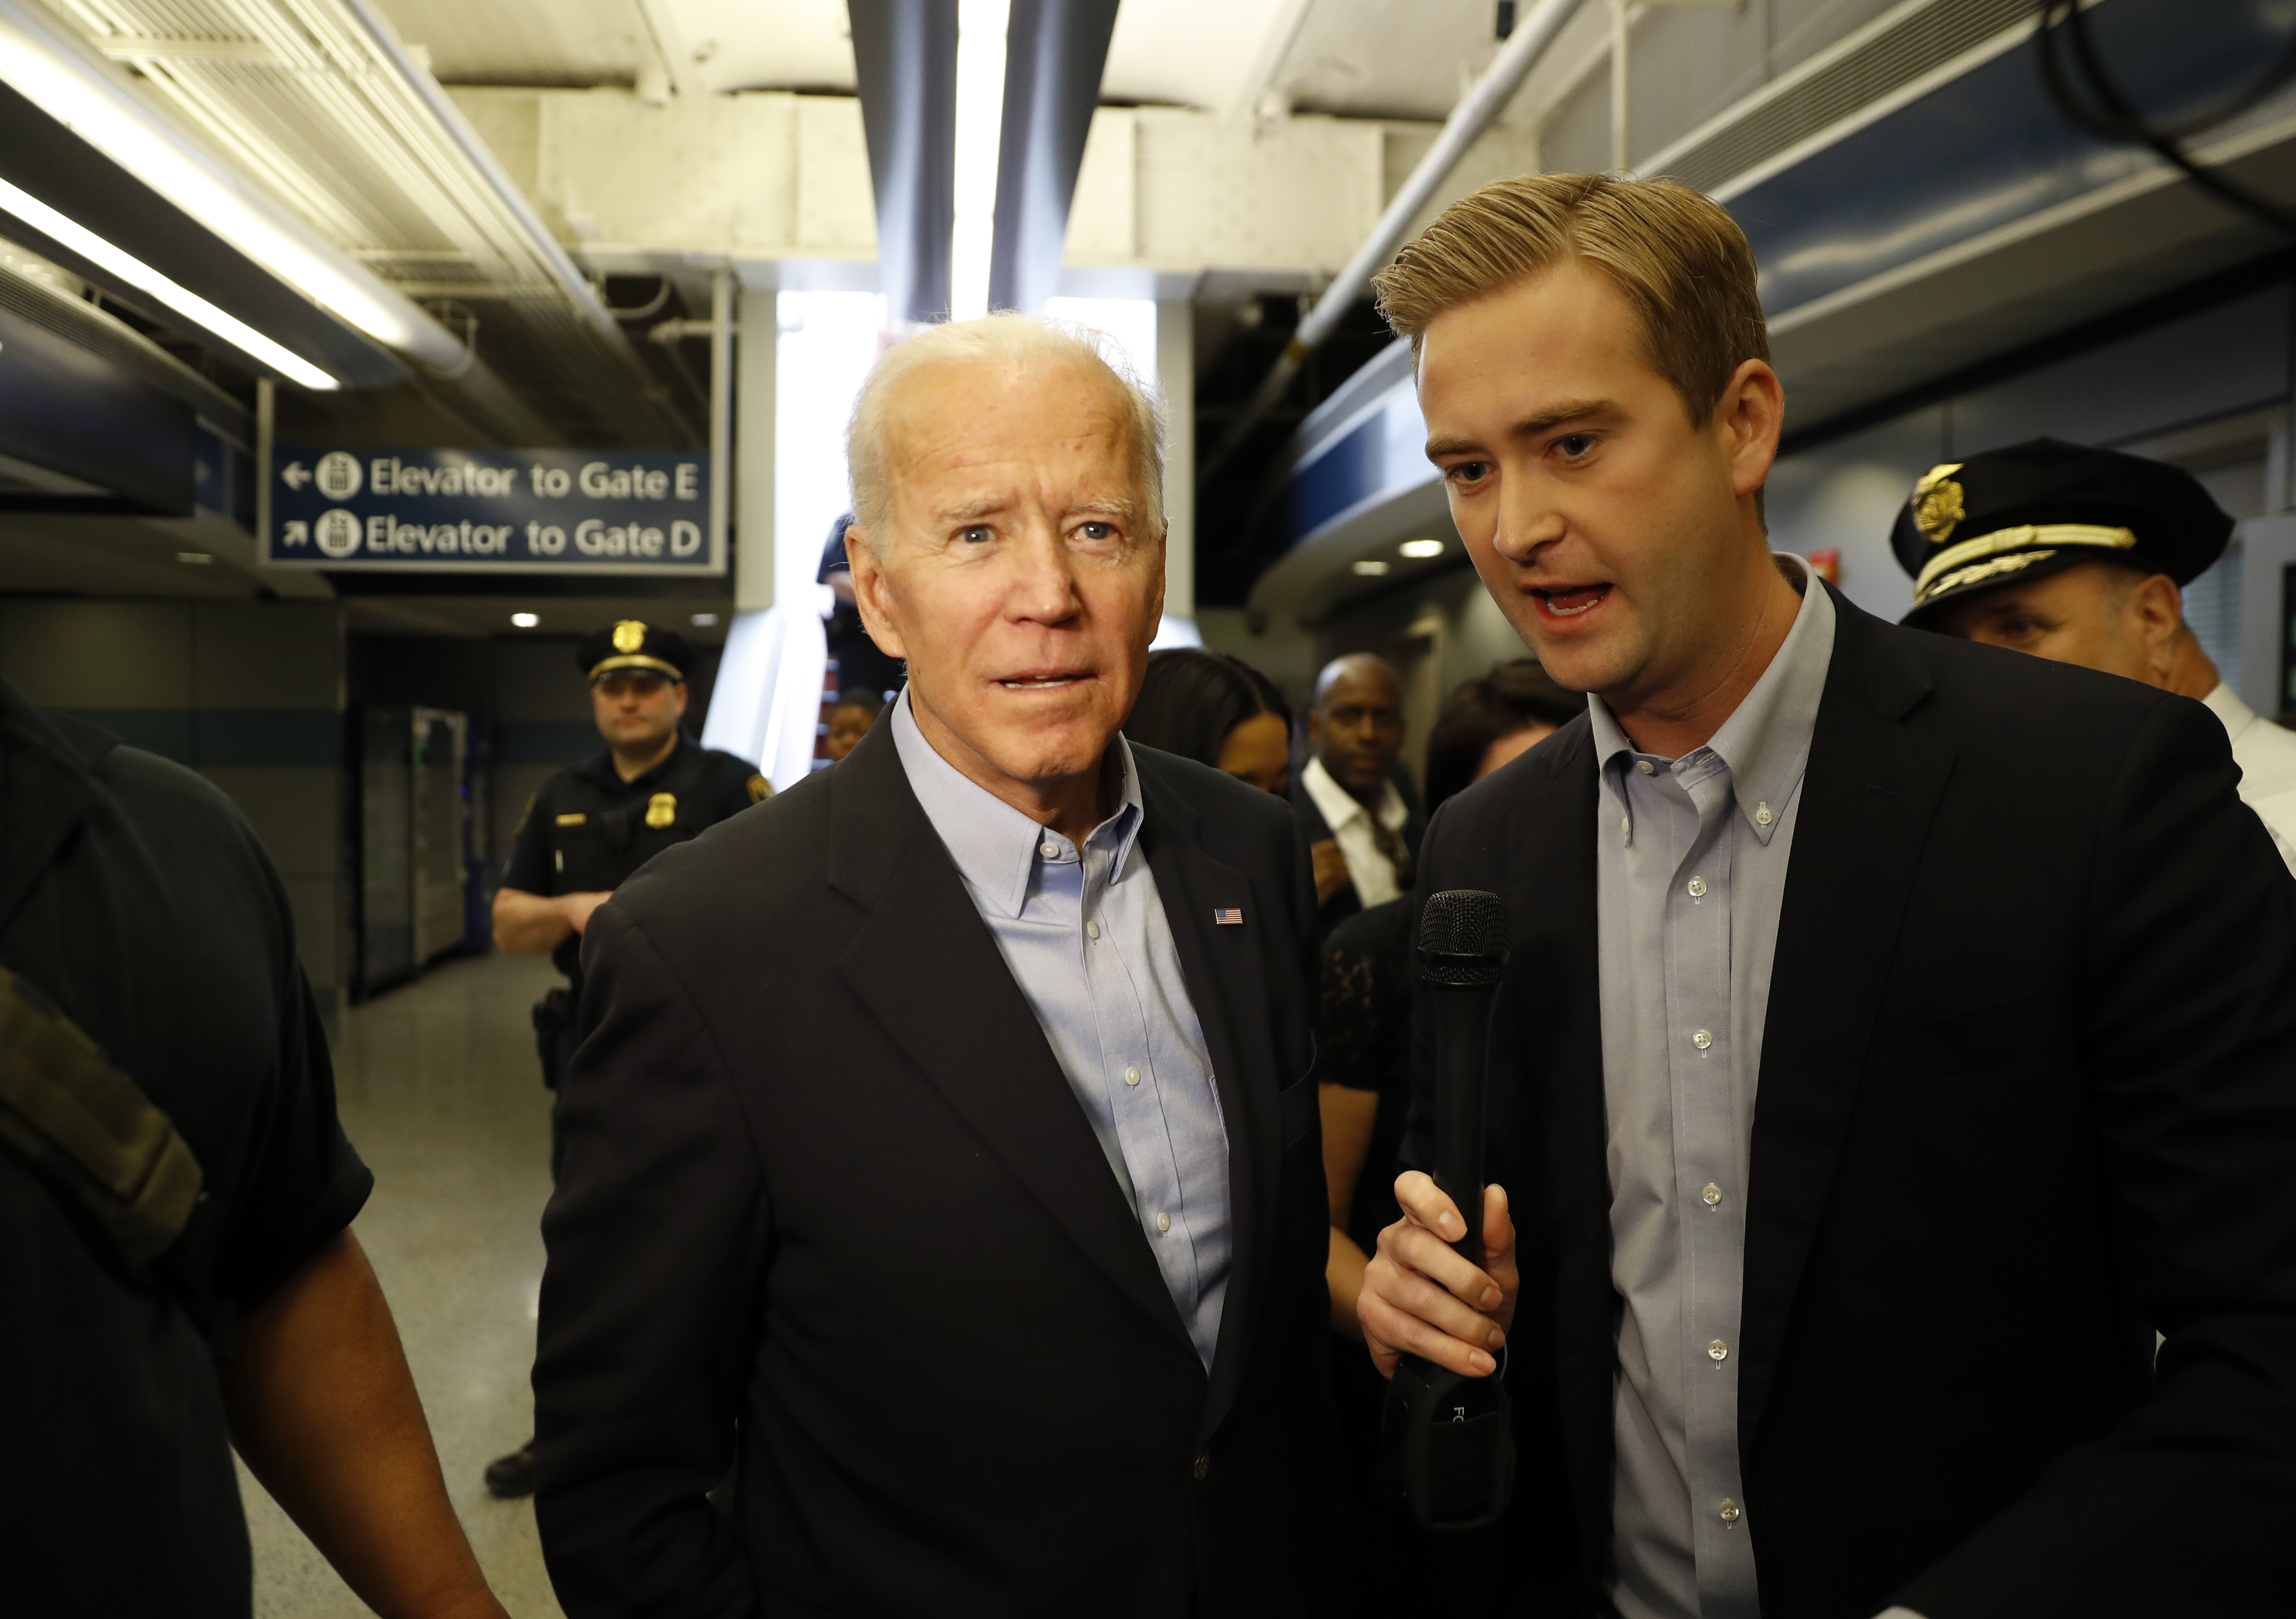 Biden says he 'asked' Obama 'not to endorse' him in Democratic primary